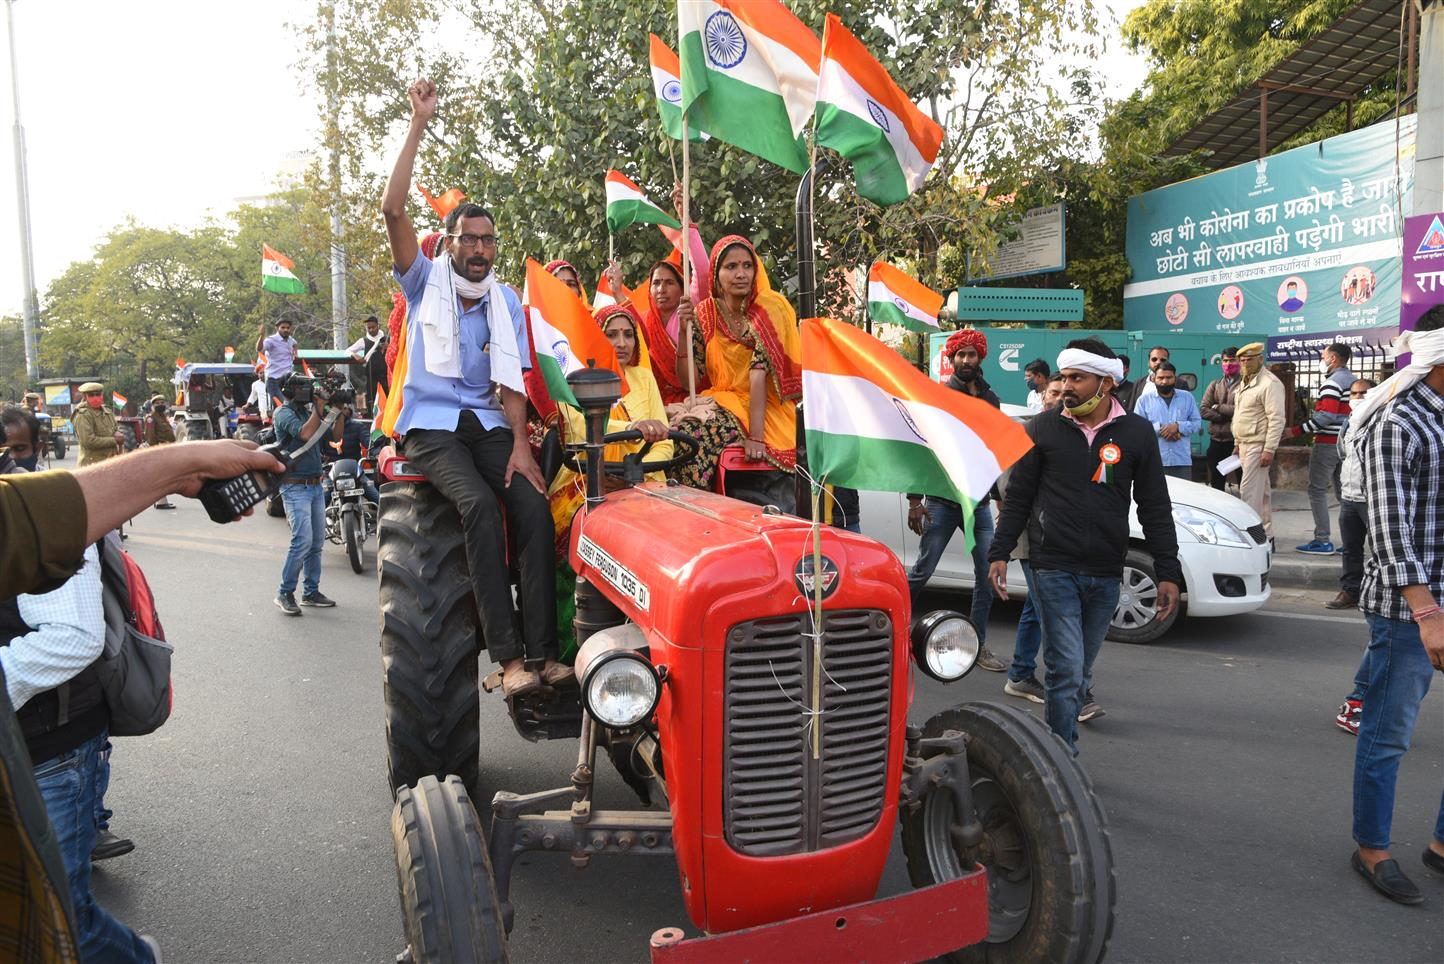 Tractor Parade A Show Of Might: Farmers